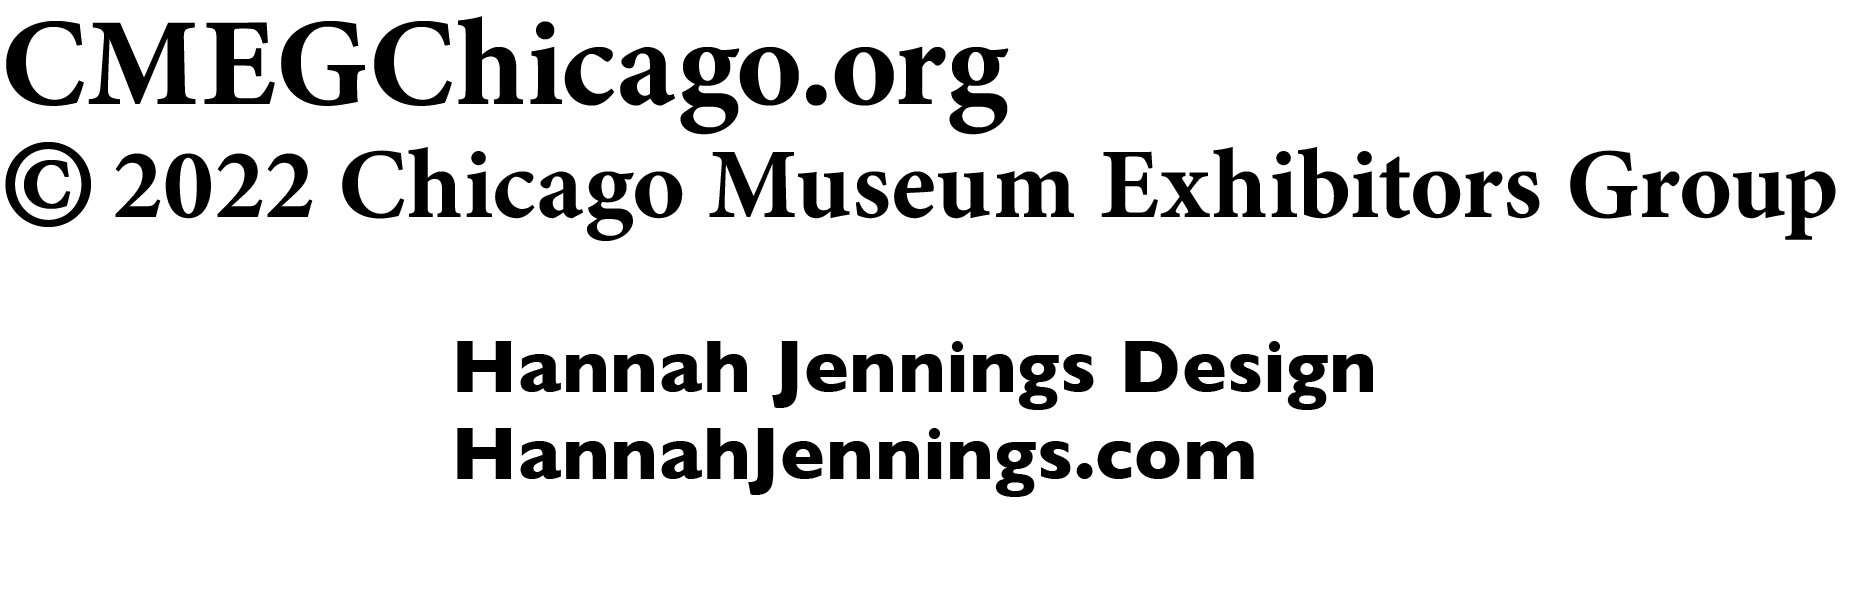 CMEGChicago.org 2010 Chicago Museum Exhibitor's Group. By Hannah Jennings Design: HannahJennings.com